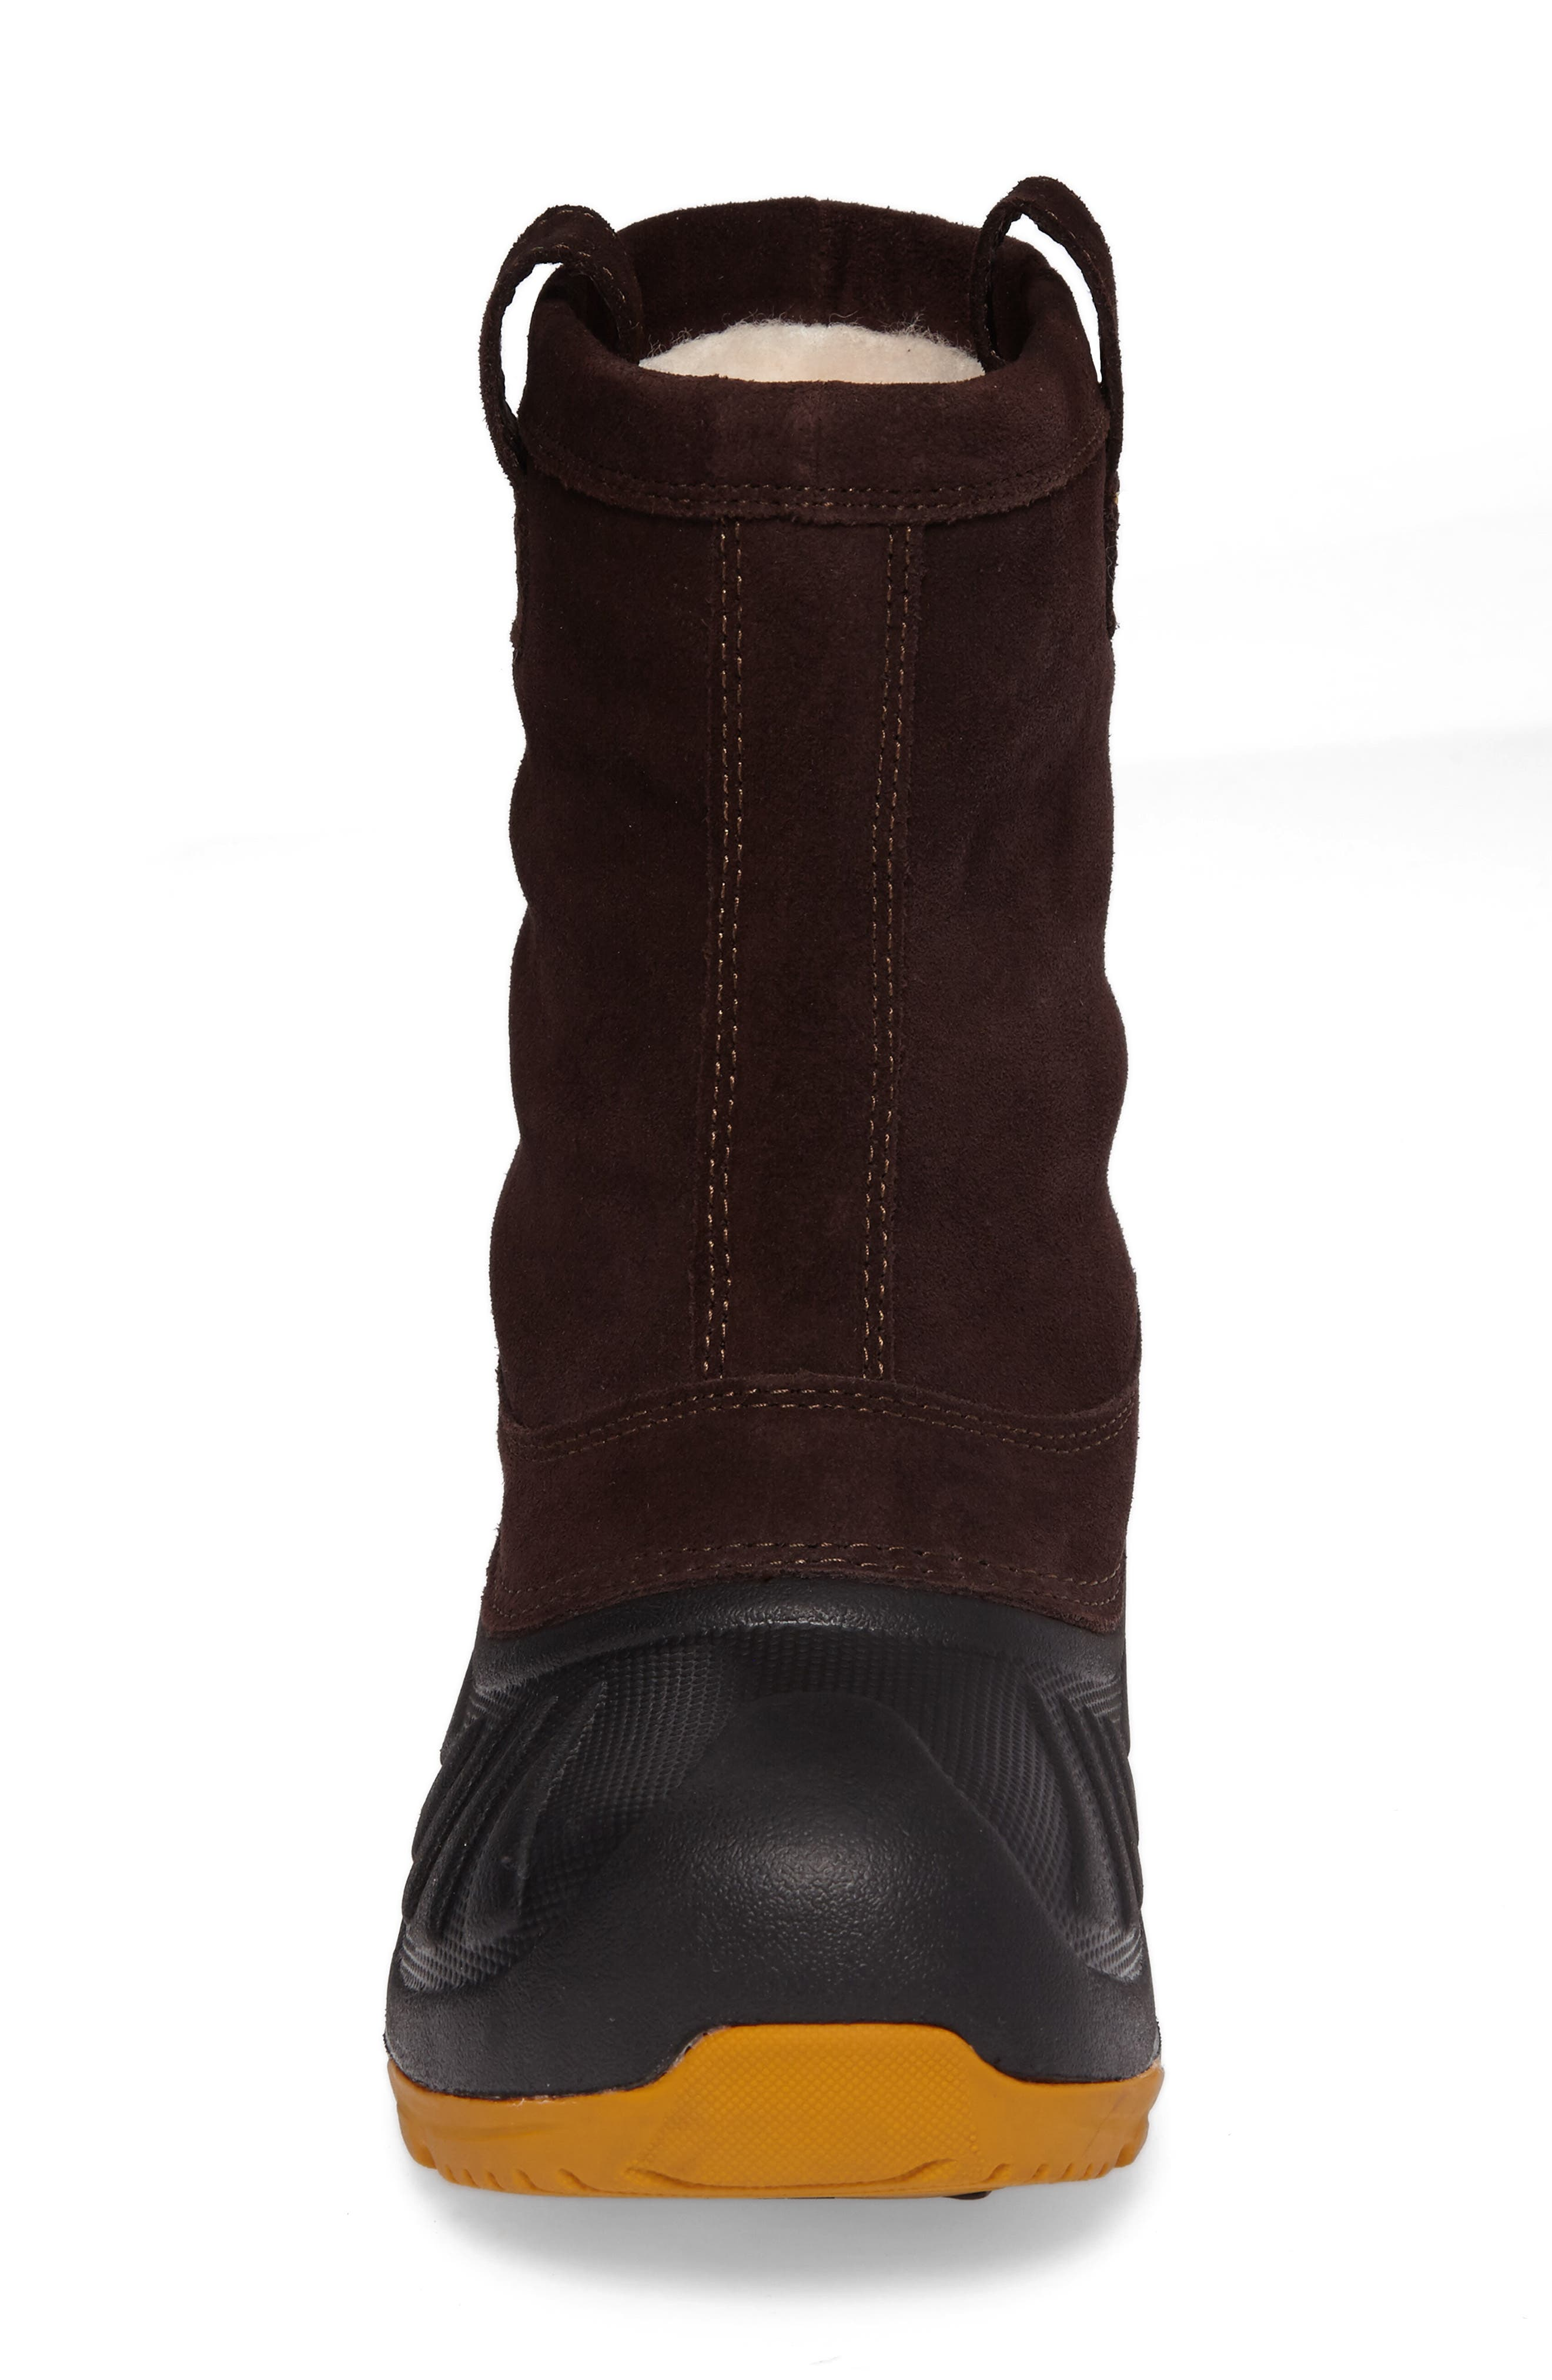 Evertt Waterproof Thinsulate<sup>™</sup> Insulated Snow Boot,                             Alternate thumbnail 7, color,